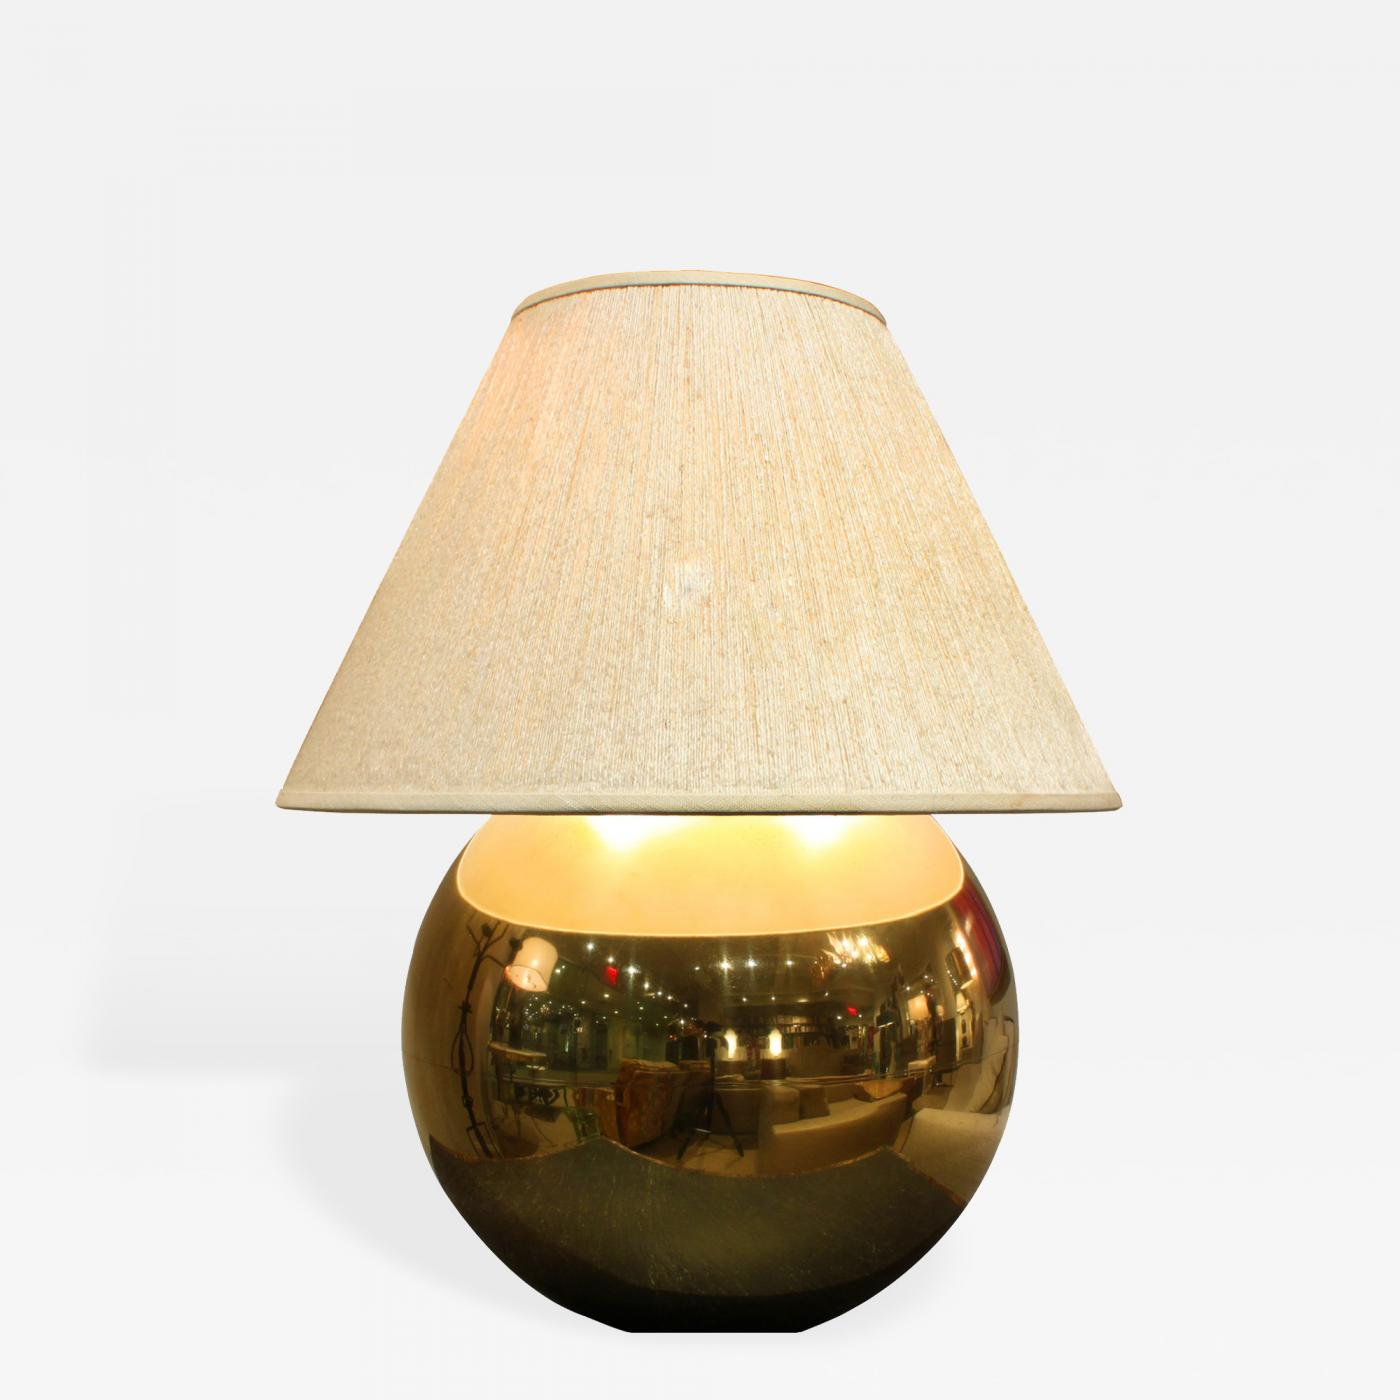 Karl Springer Metal Ball Lamp In Brass By Karl Springer 1980s